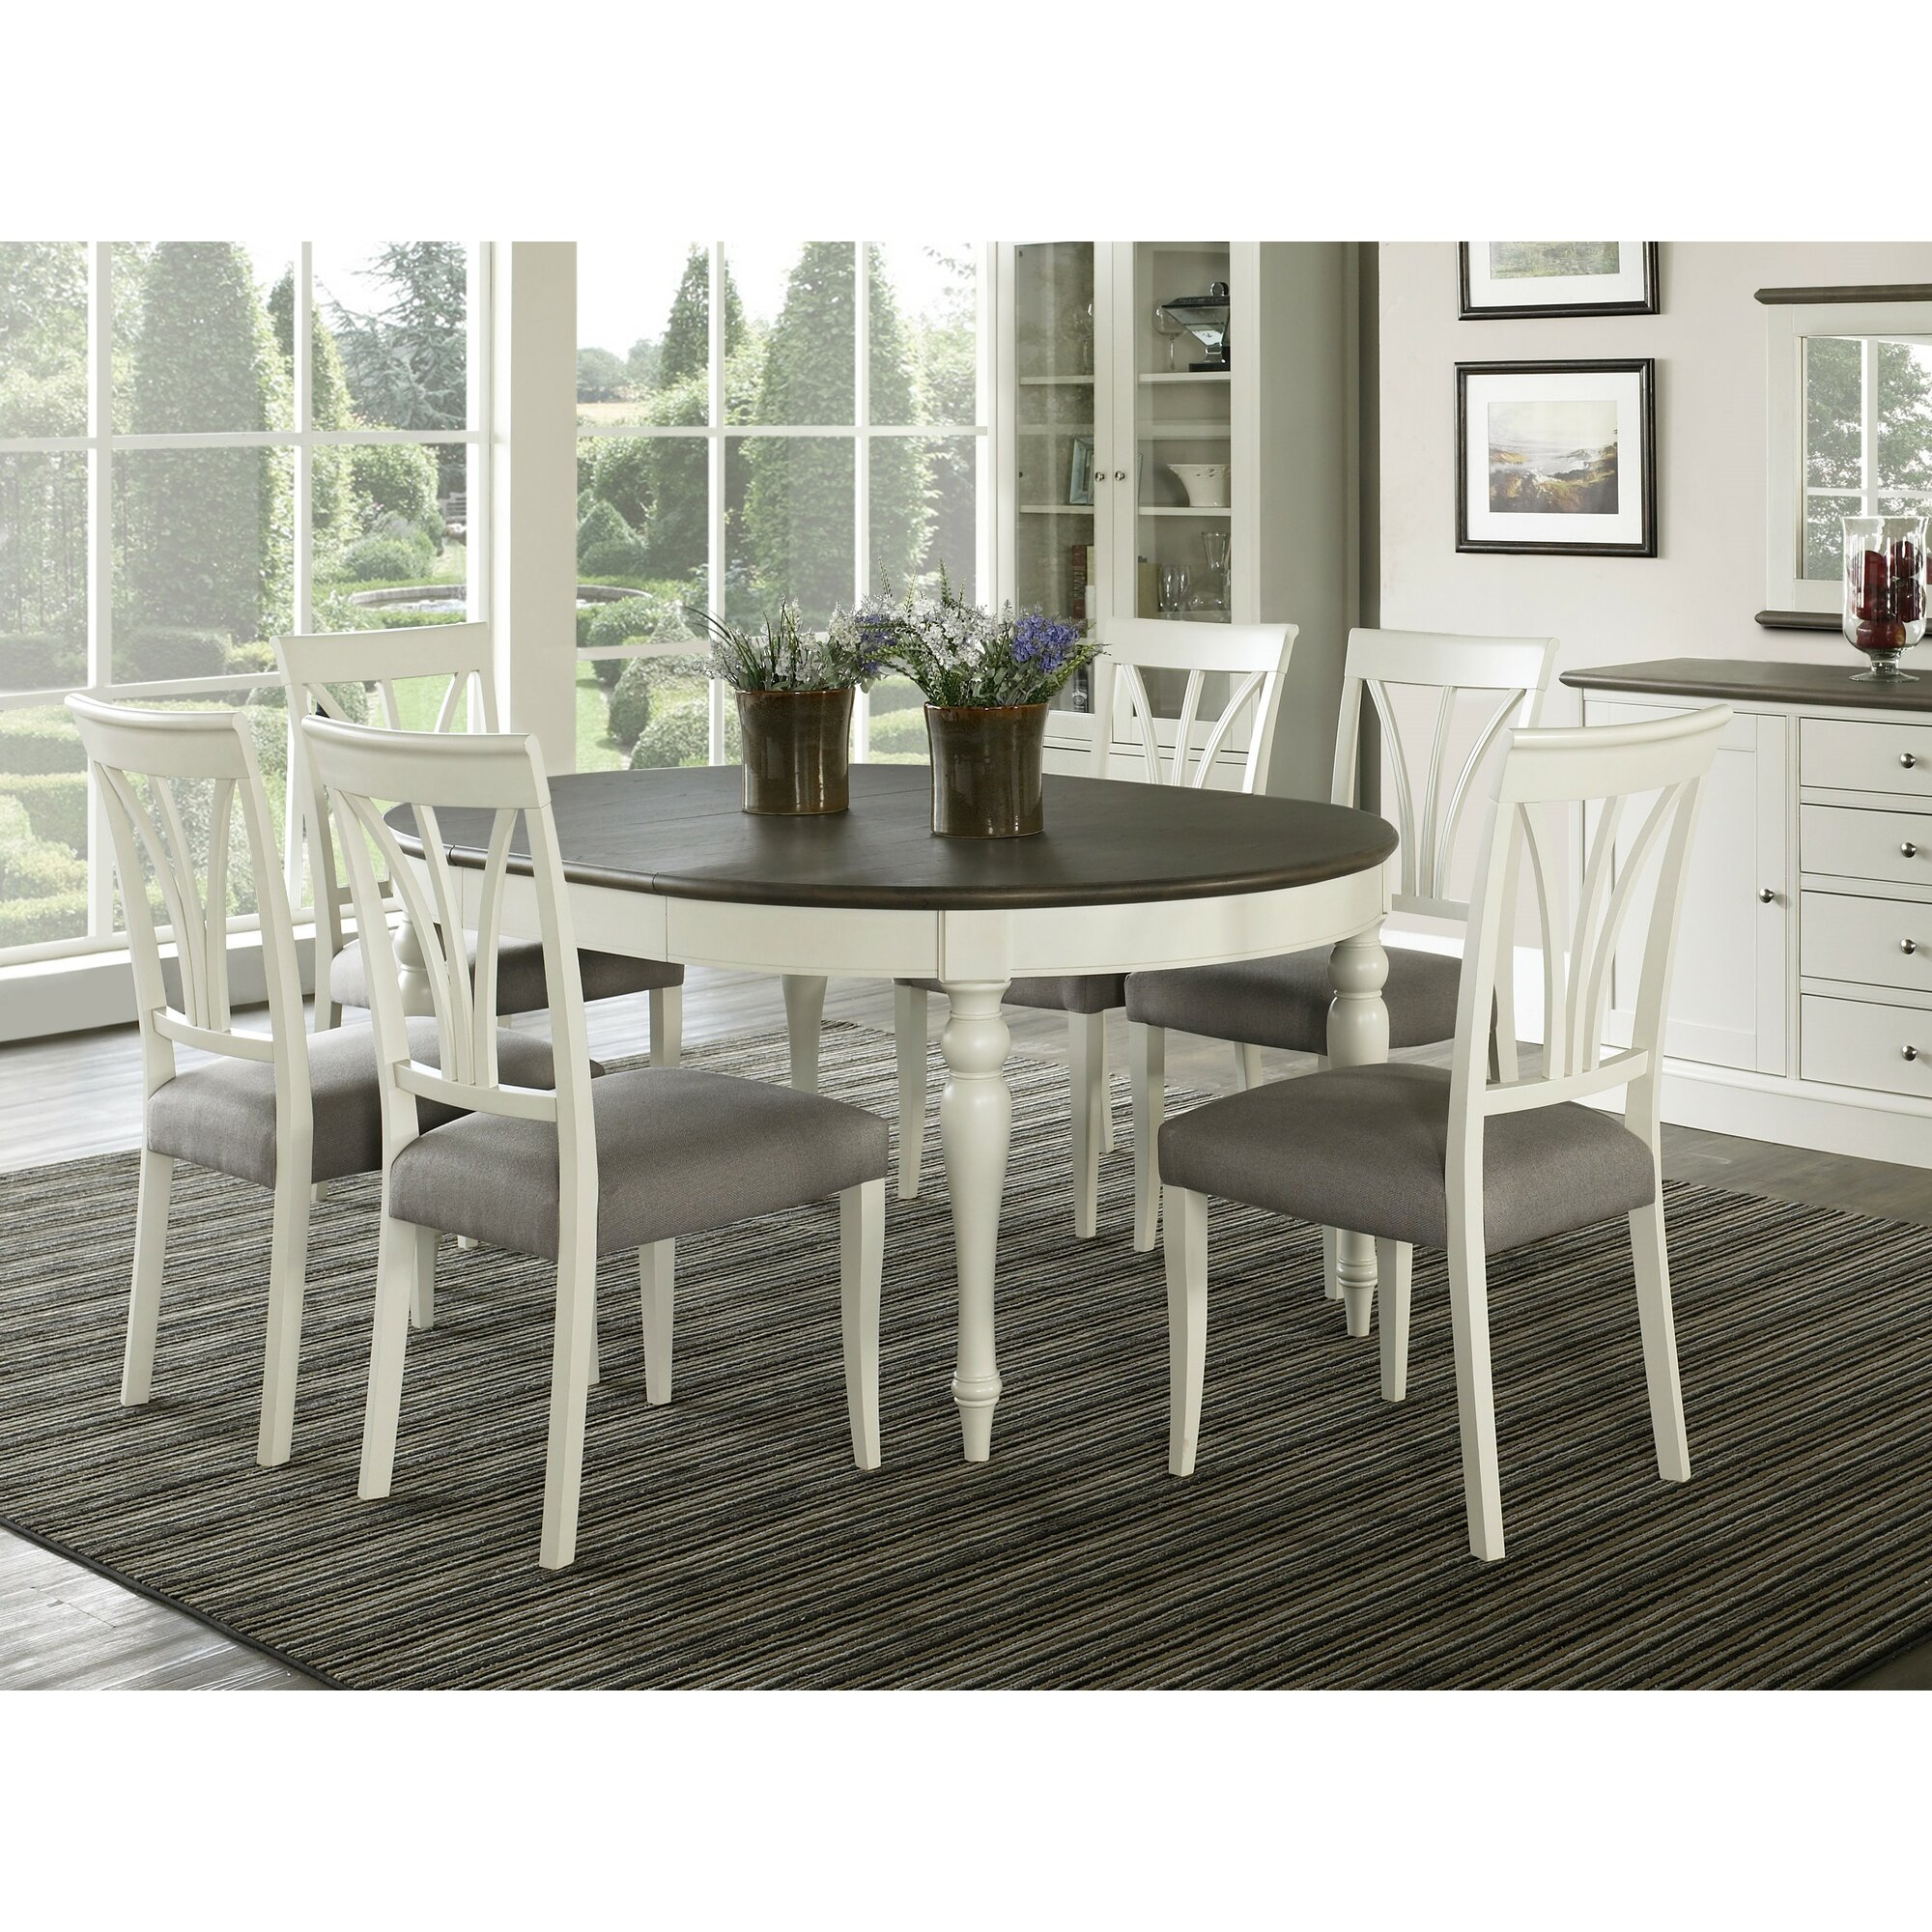 Rosecliff Heights Lattimore 5 Piece Wood Dining Set